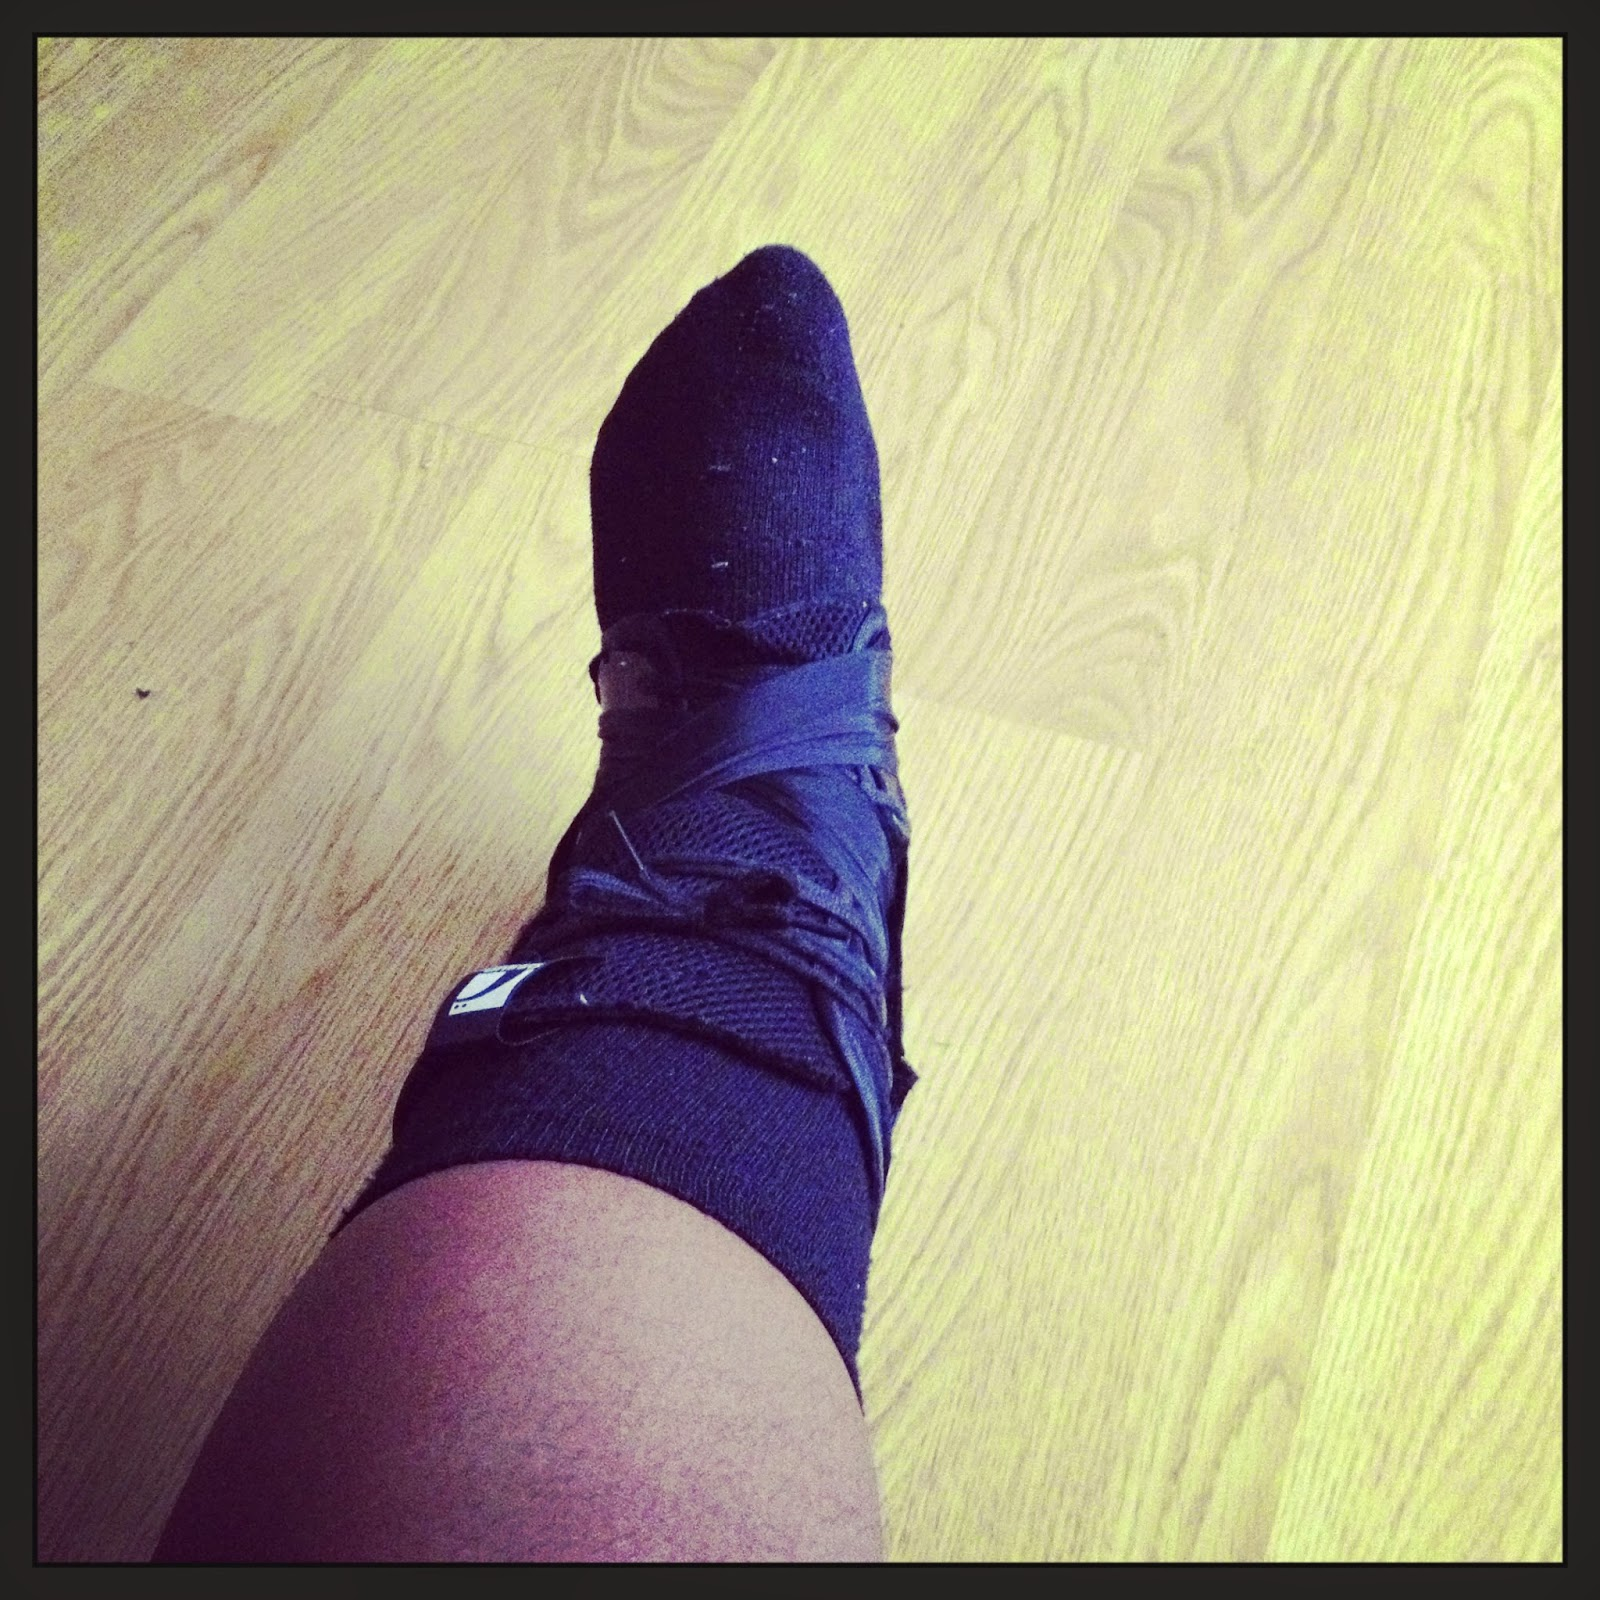 Went Emergency Room With Ankle Pain And Back Pain